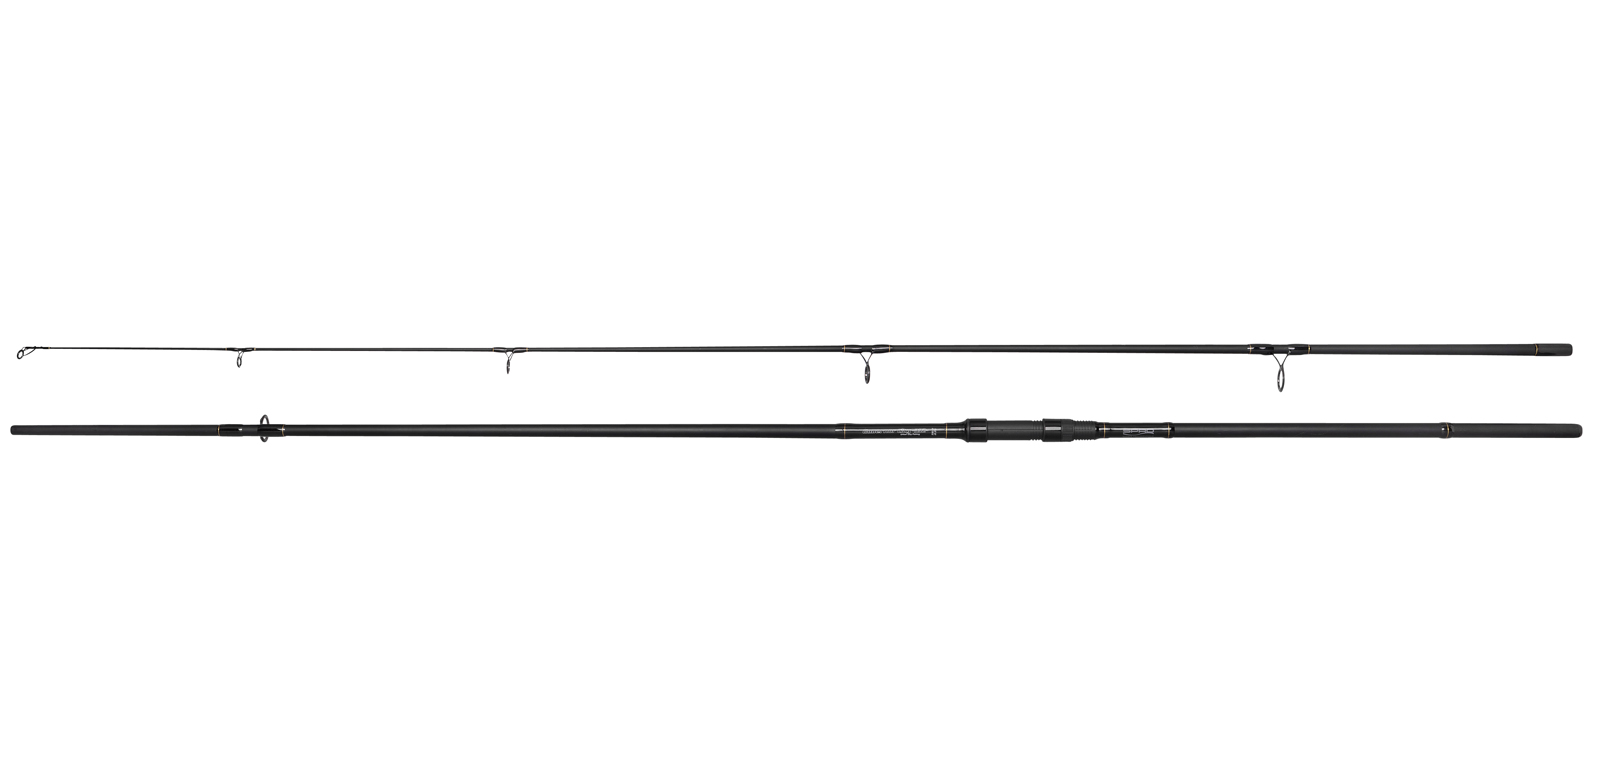 Rekenen Groep 4 likewise accuracy additionally Ruler 30 Cm by mm likewise Watch also Printable Millimeter Ruler. on meter centimeter millimeter